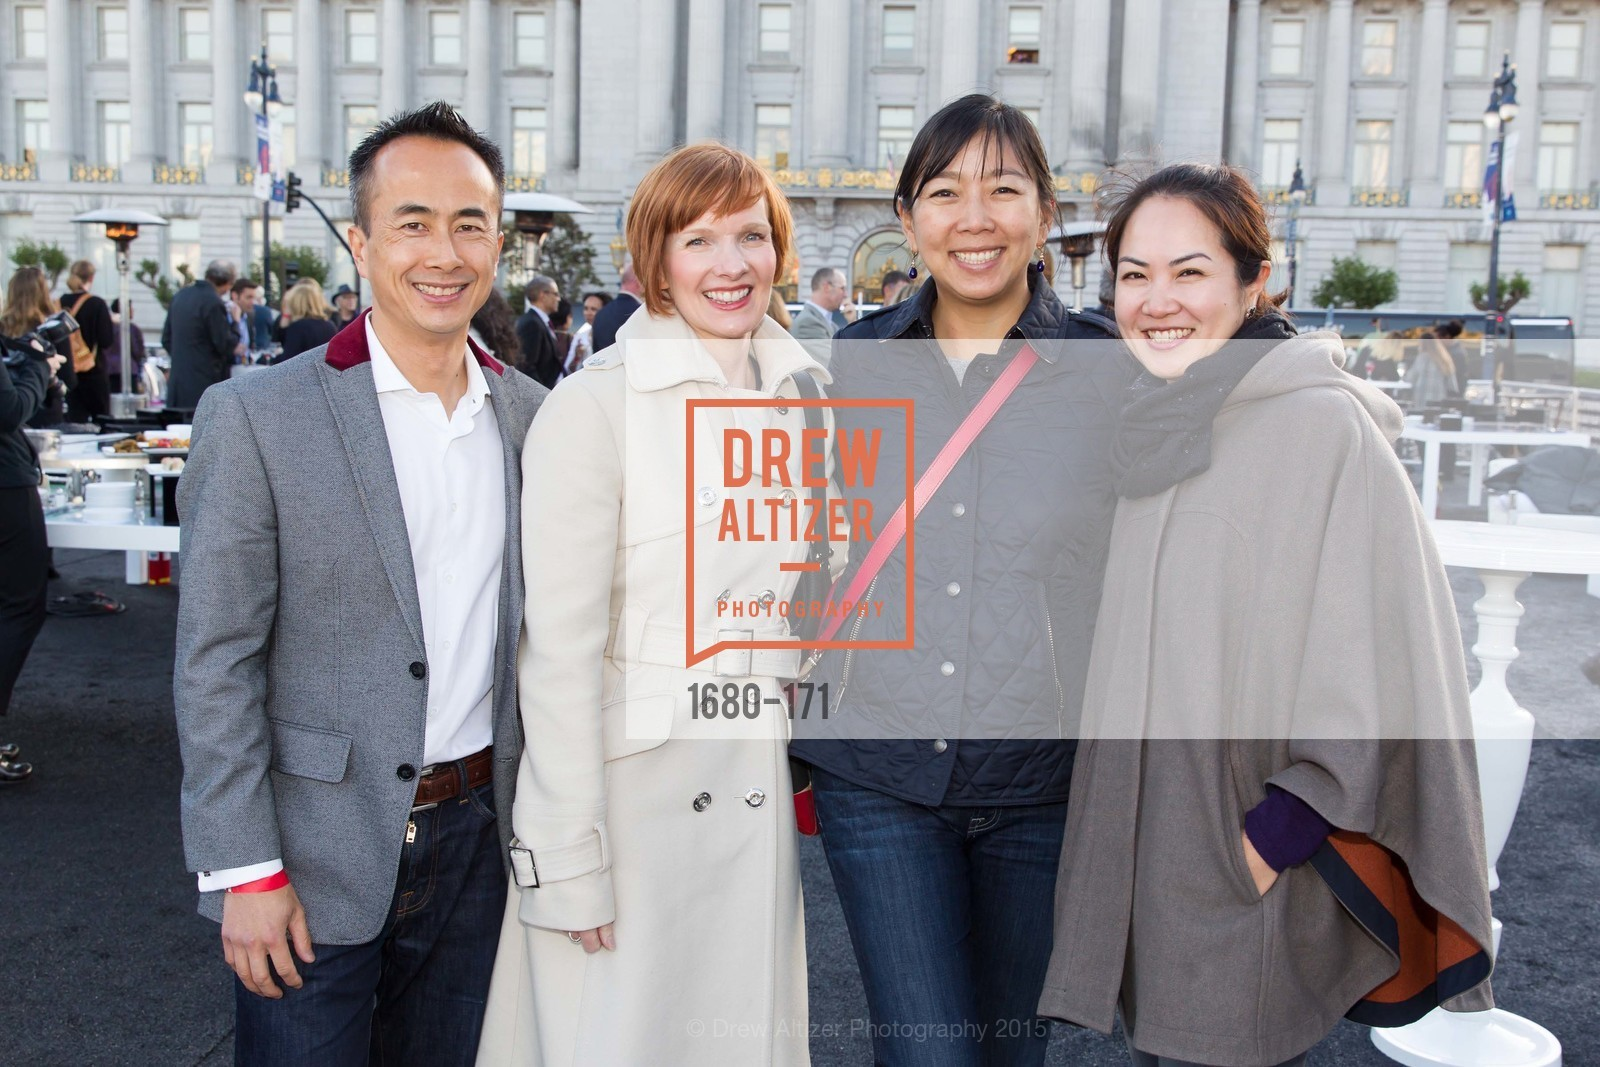 Nam Doan-Huy, Wendy Peters, Alice Liu Jensen, Linda Kim, San Francisco City Hall Centennial Celebration, Civic Center Plaza, June 18th, 2015,Drew Altizer, Drew Altizer Photography, full-service agency, private events, San Francisco photographer, photographer california